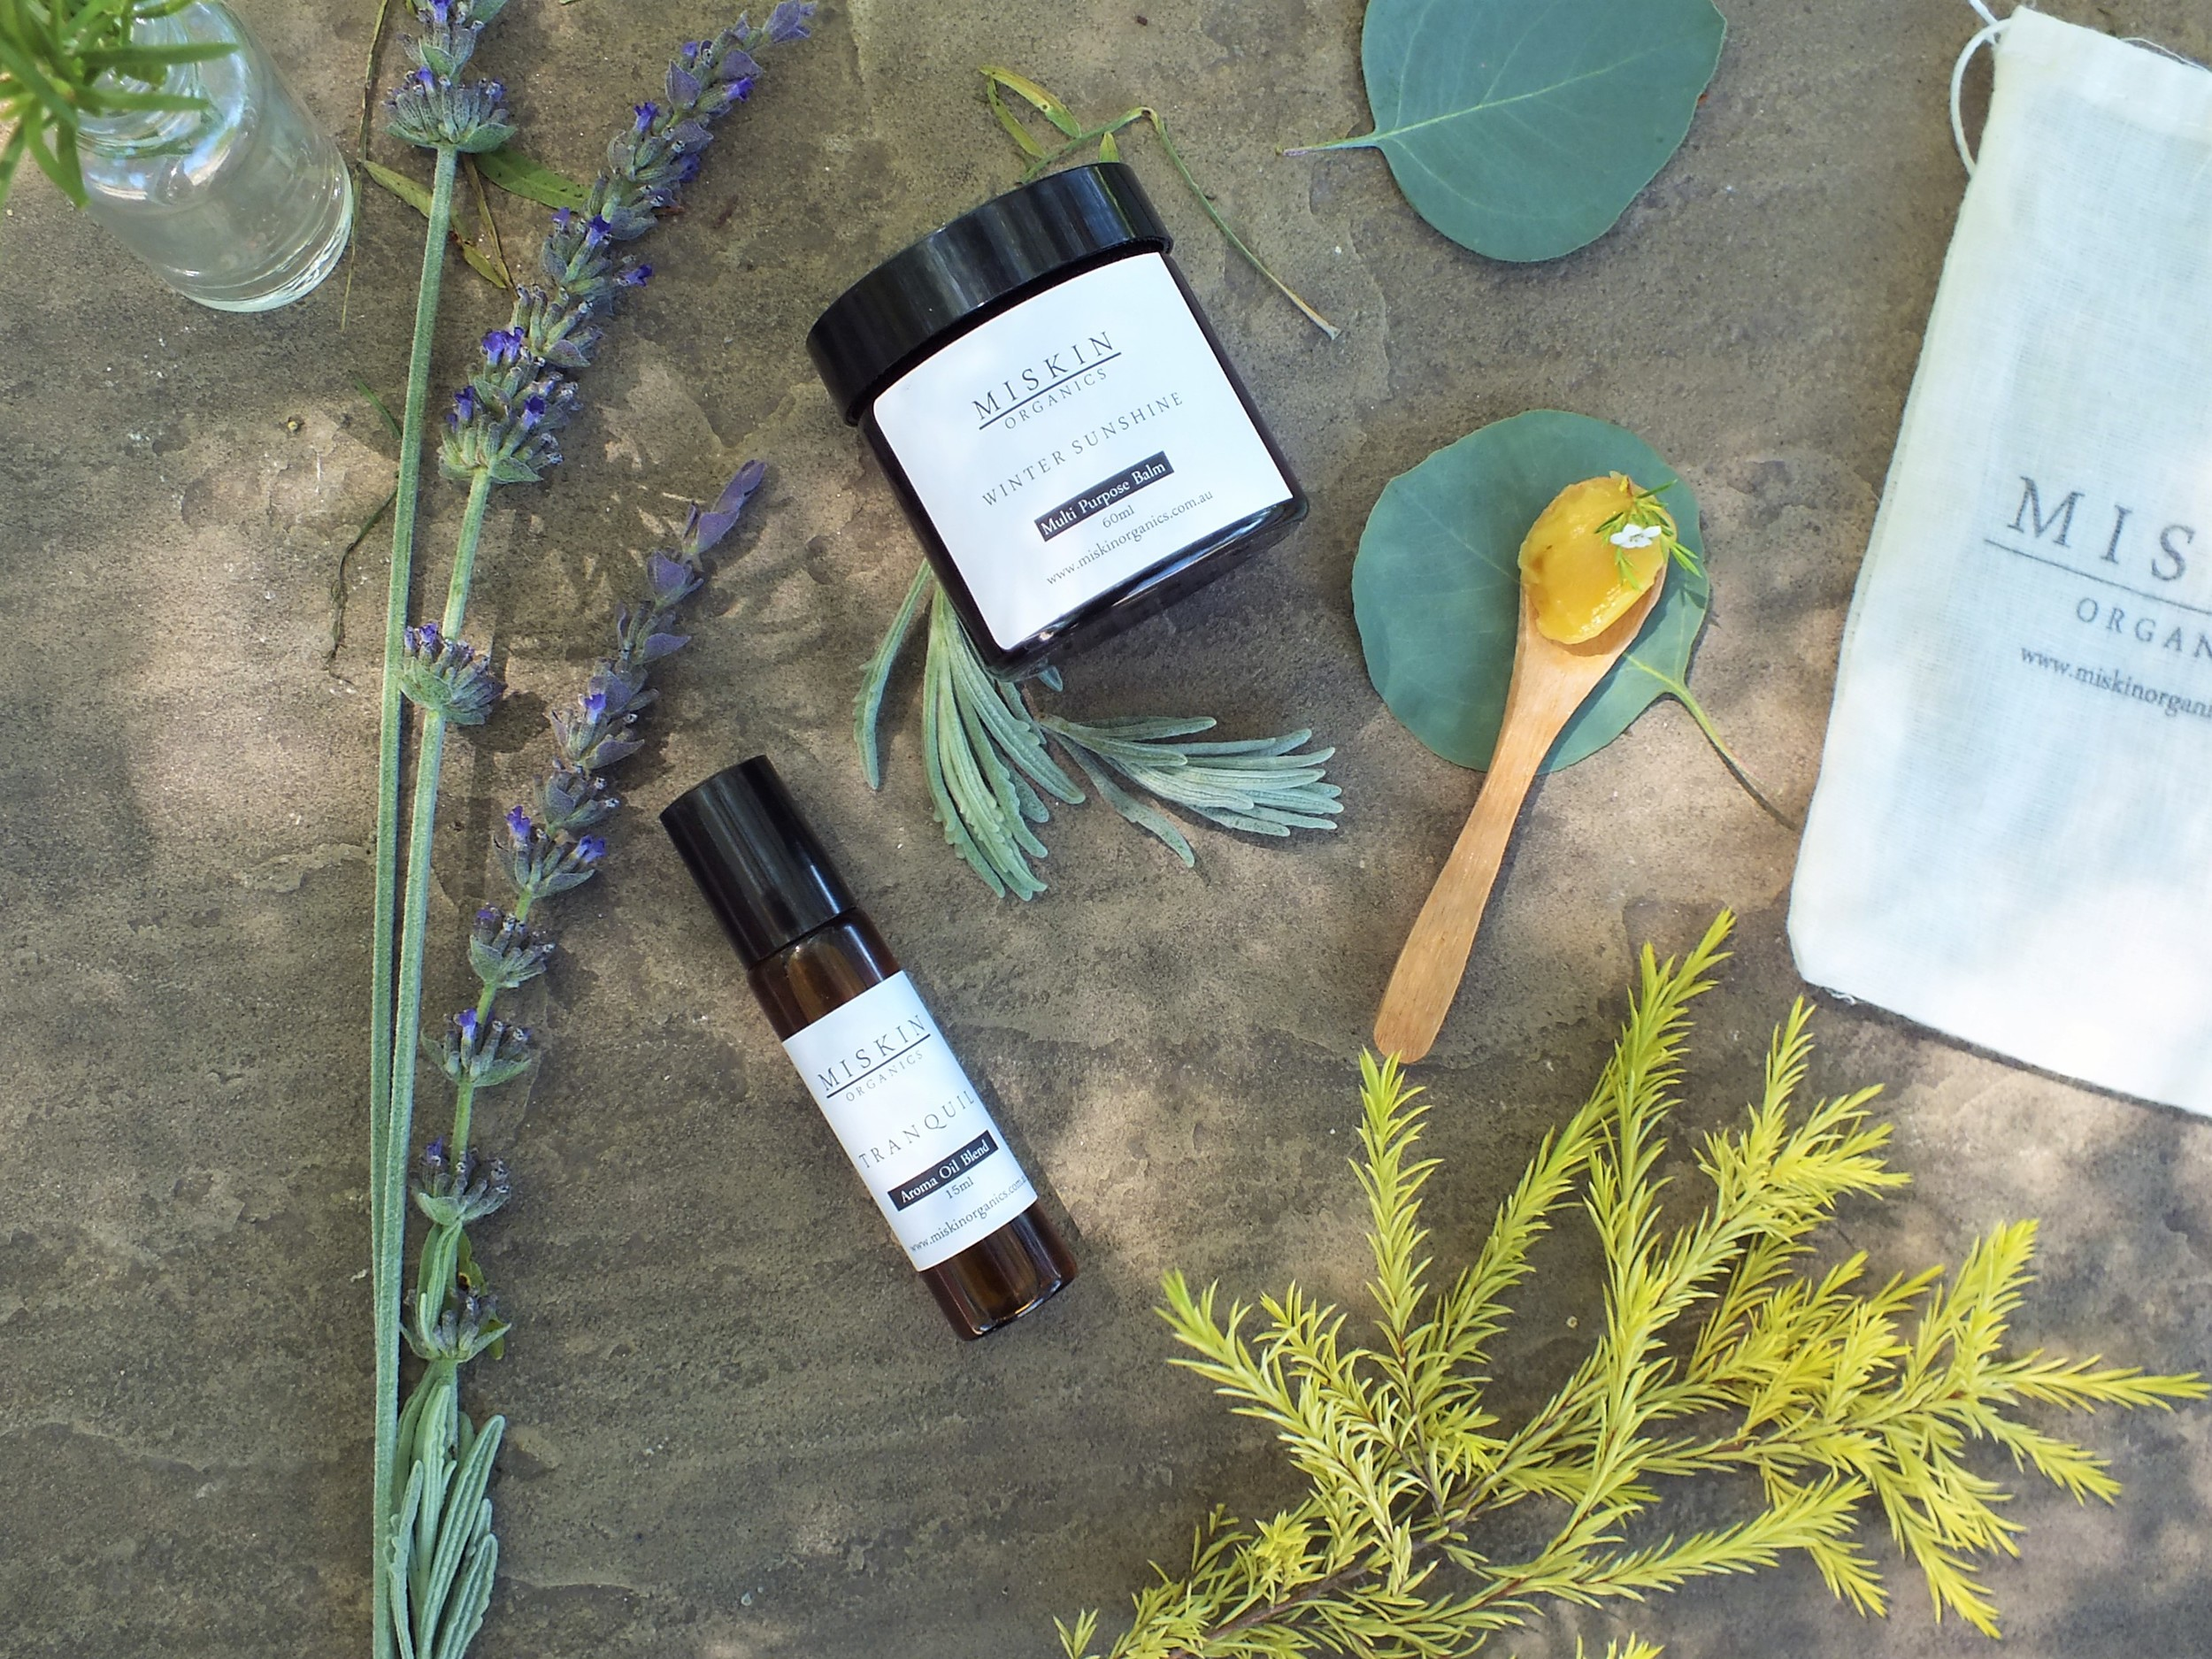 Tranquility Aromatherapy Oil and Winter Sunshine Balm